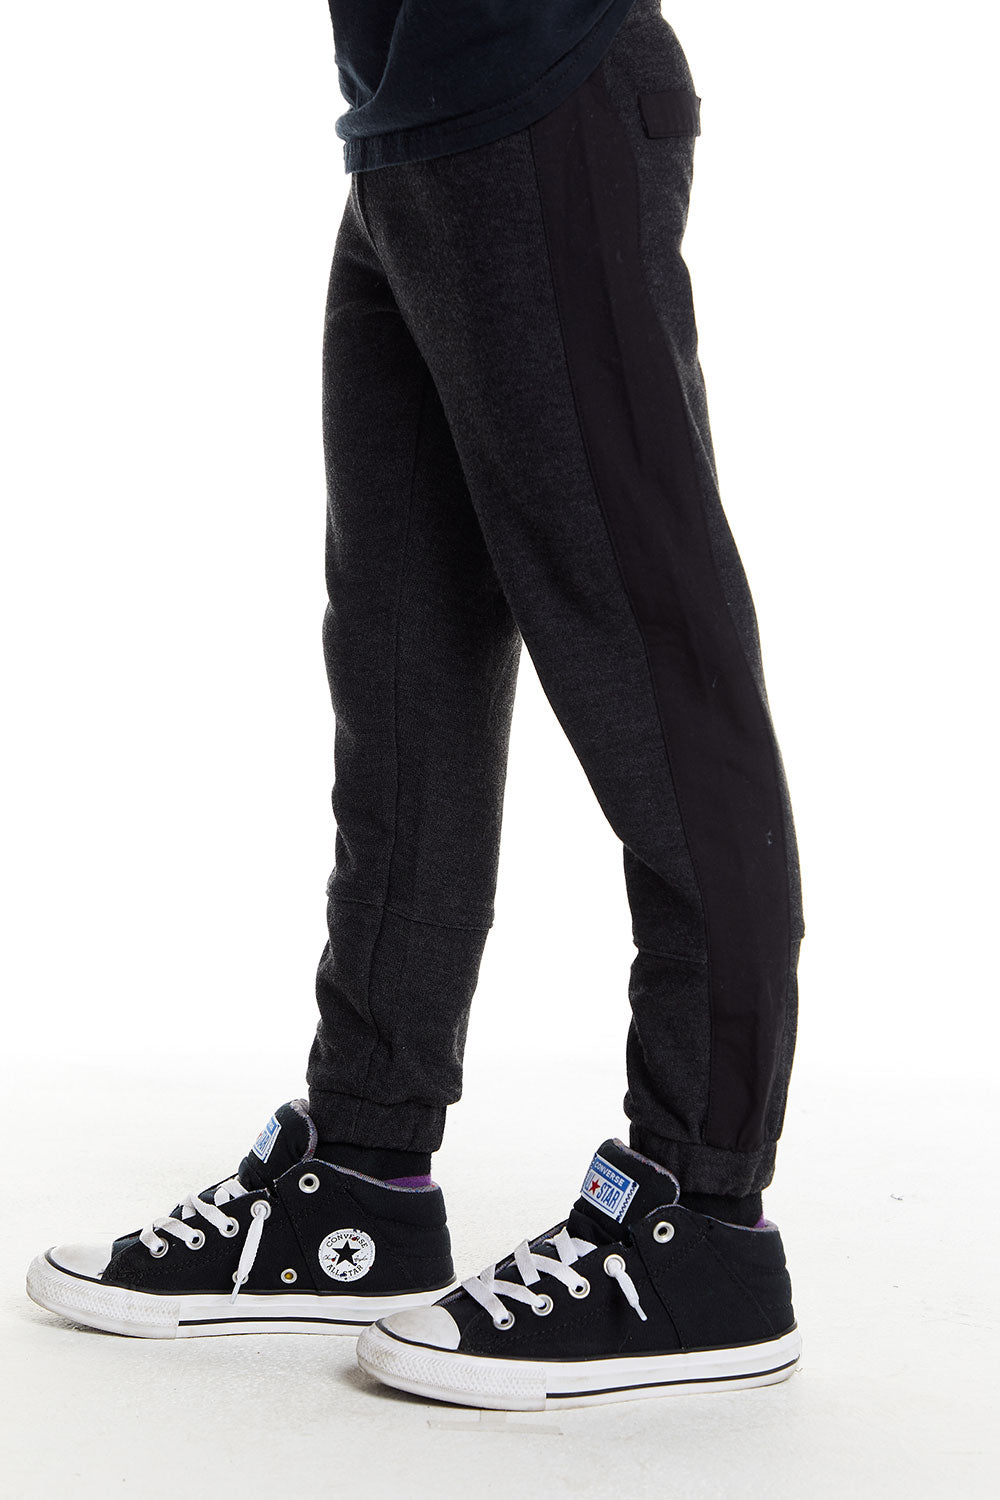 Boys Cozy Knit Poplin Blocked Track Pant in Black